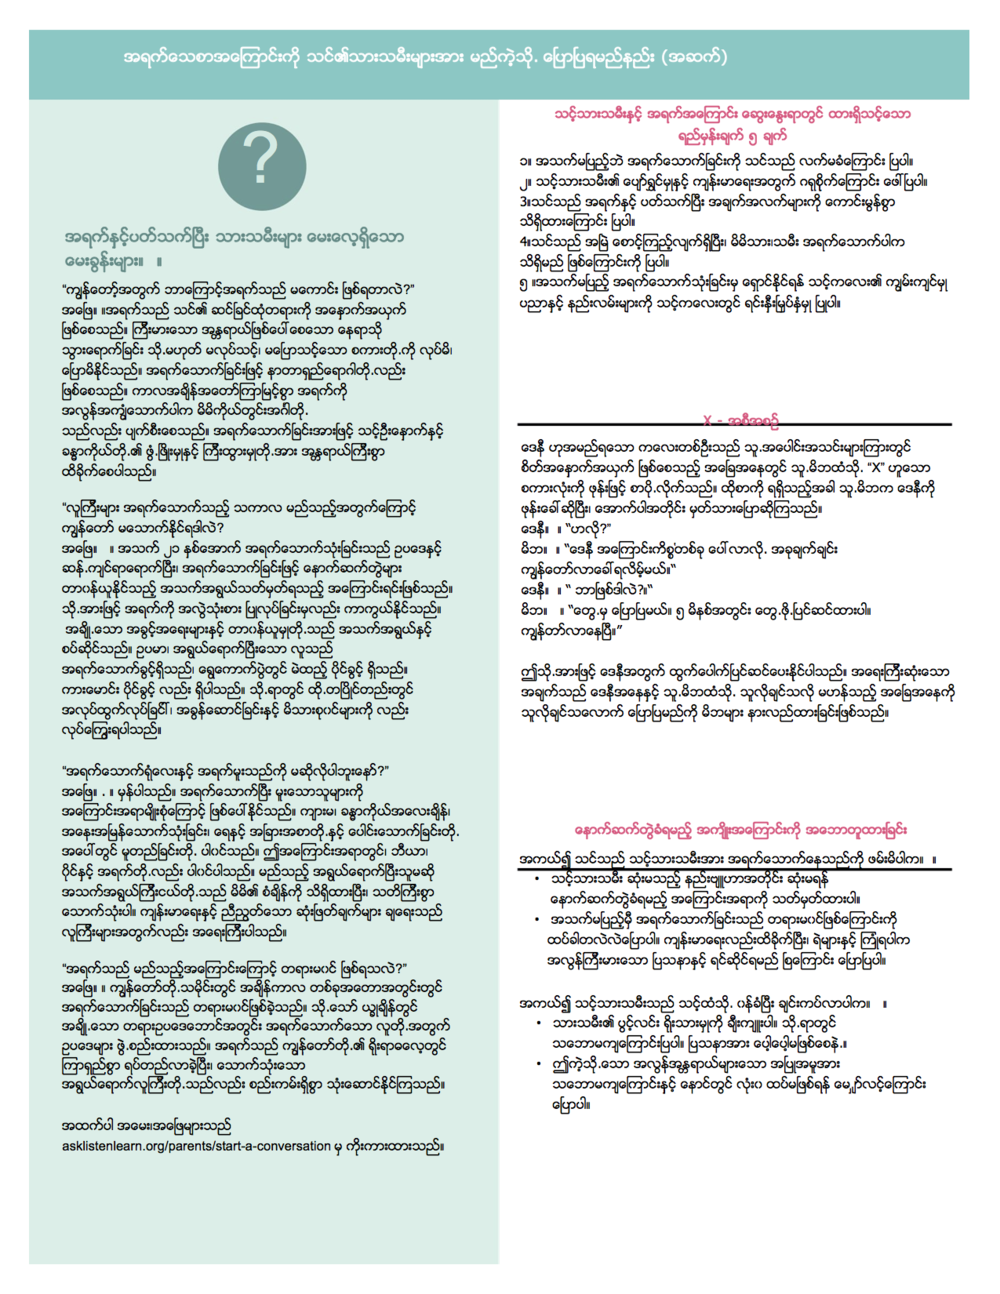 Burmese Translation How Fact Sheet 2.png